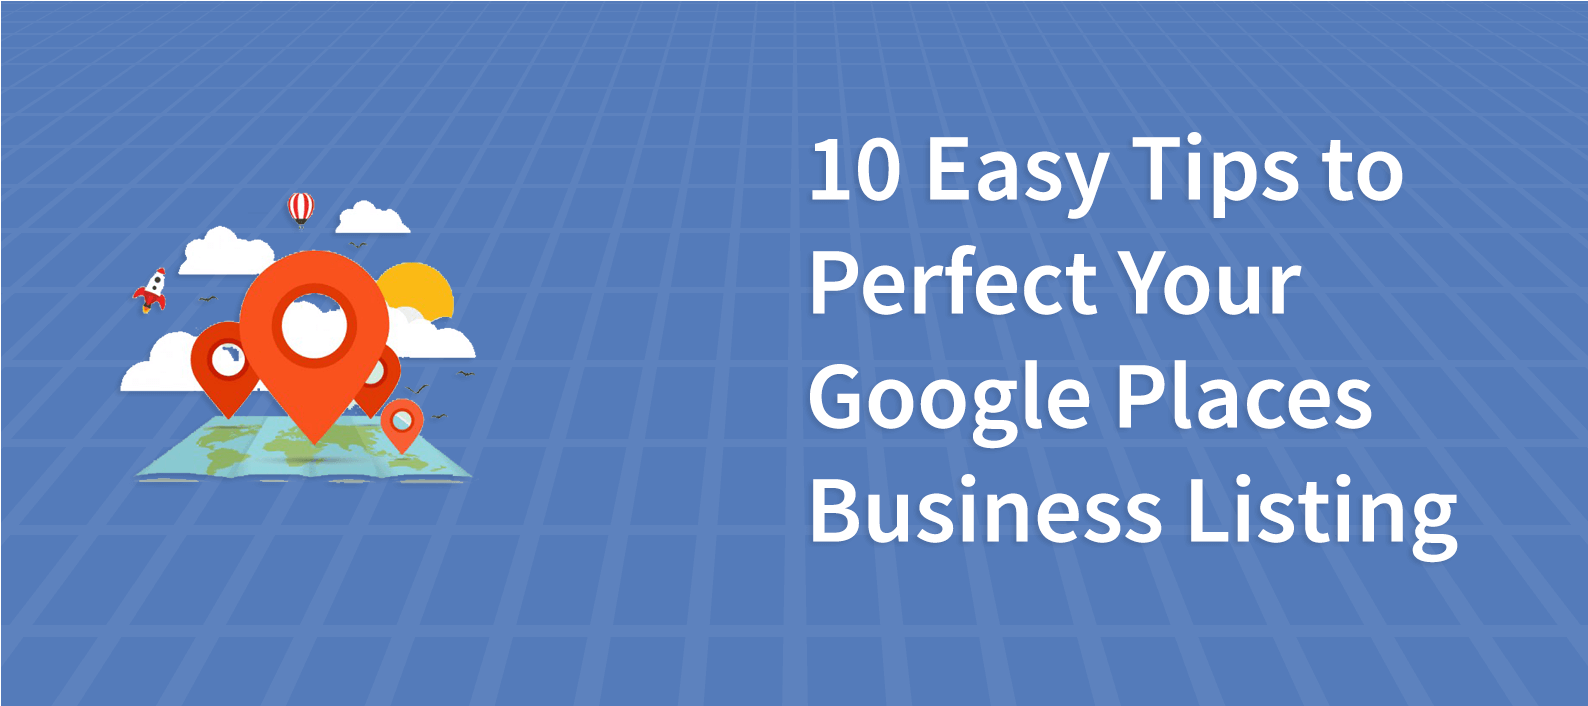 10 Easy Tips to Perfect Your Google Places Business Listing